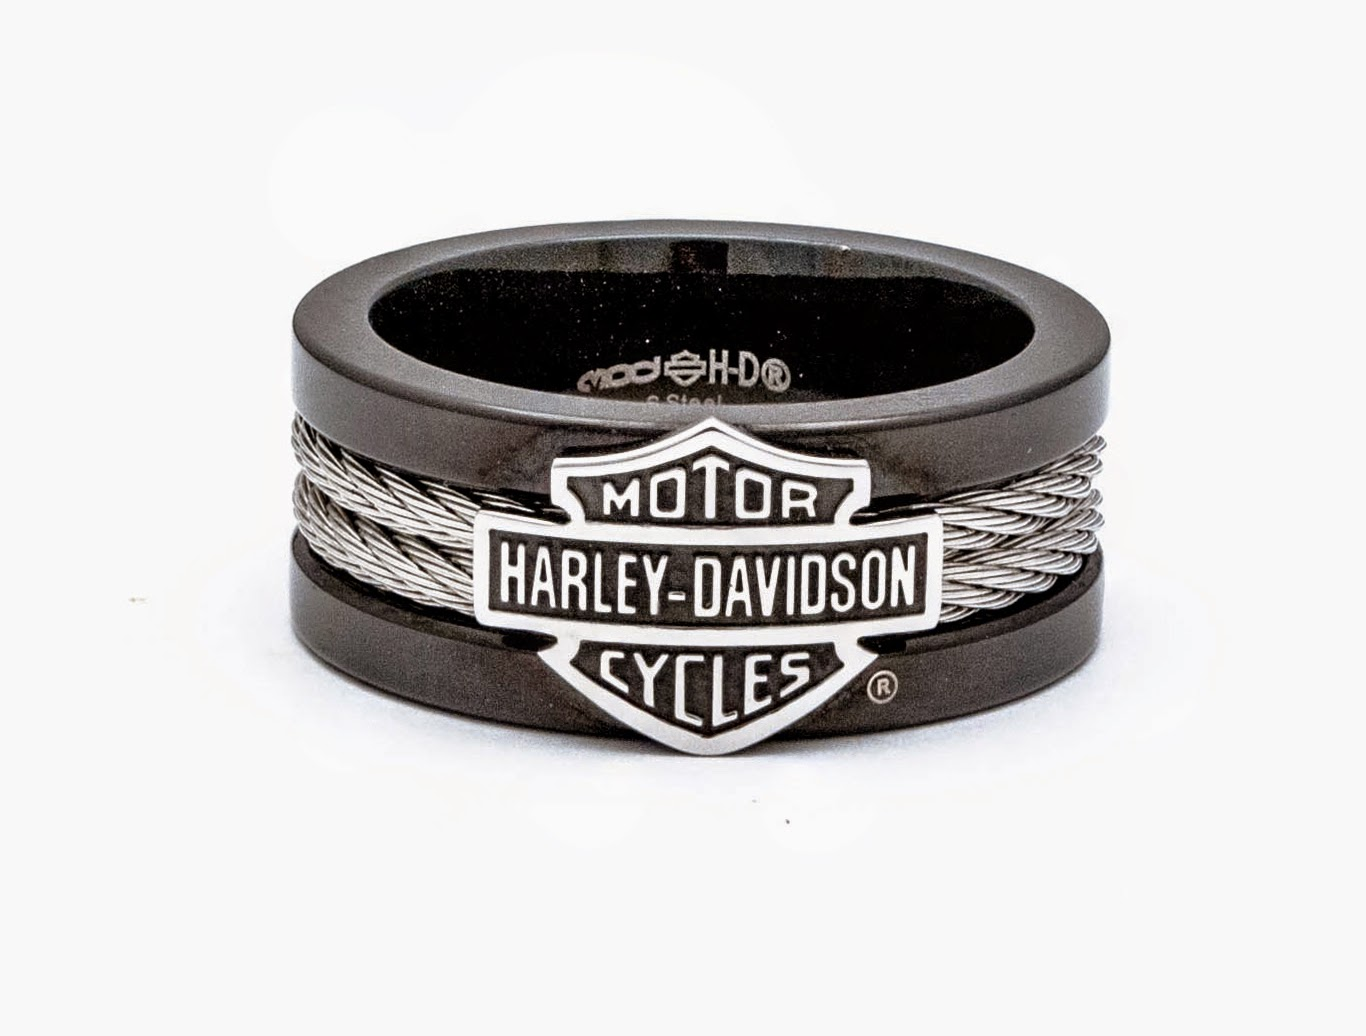 harley davidson mens wedding rings harley davidson wedding rings harley davidson mens wedding rings photos